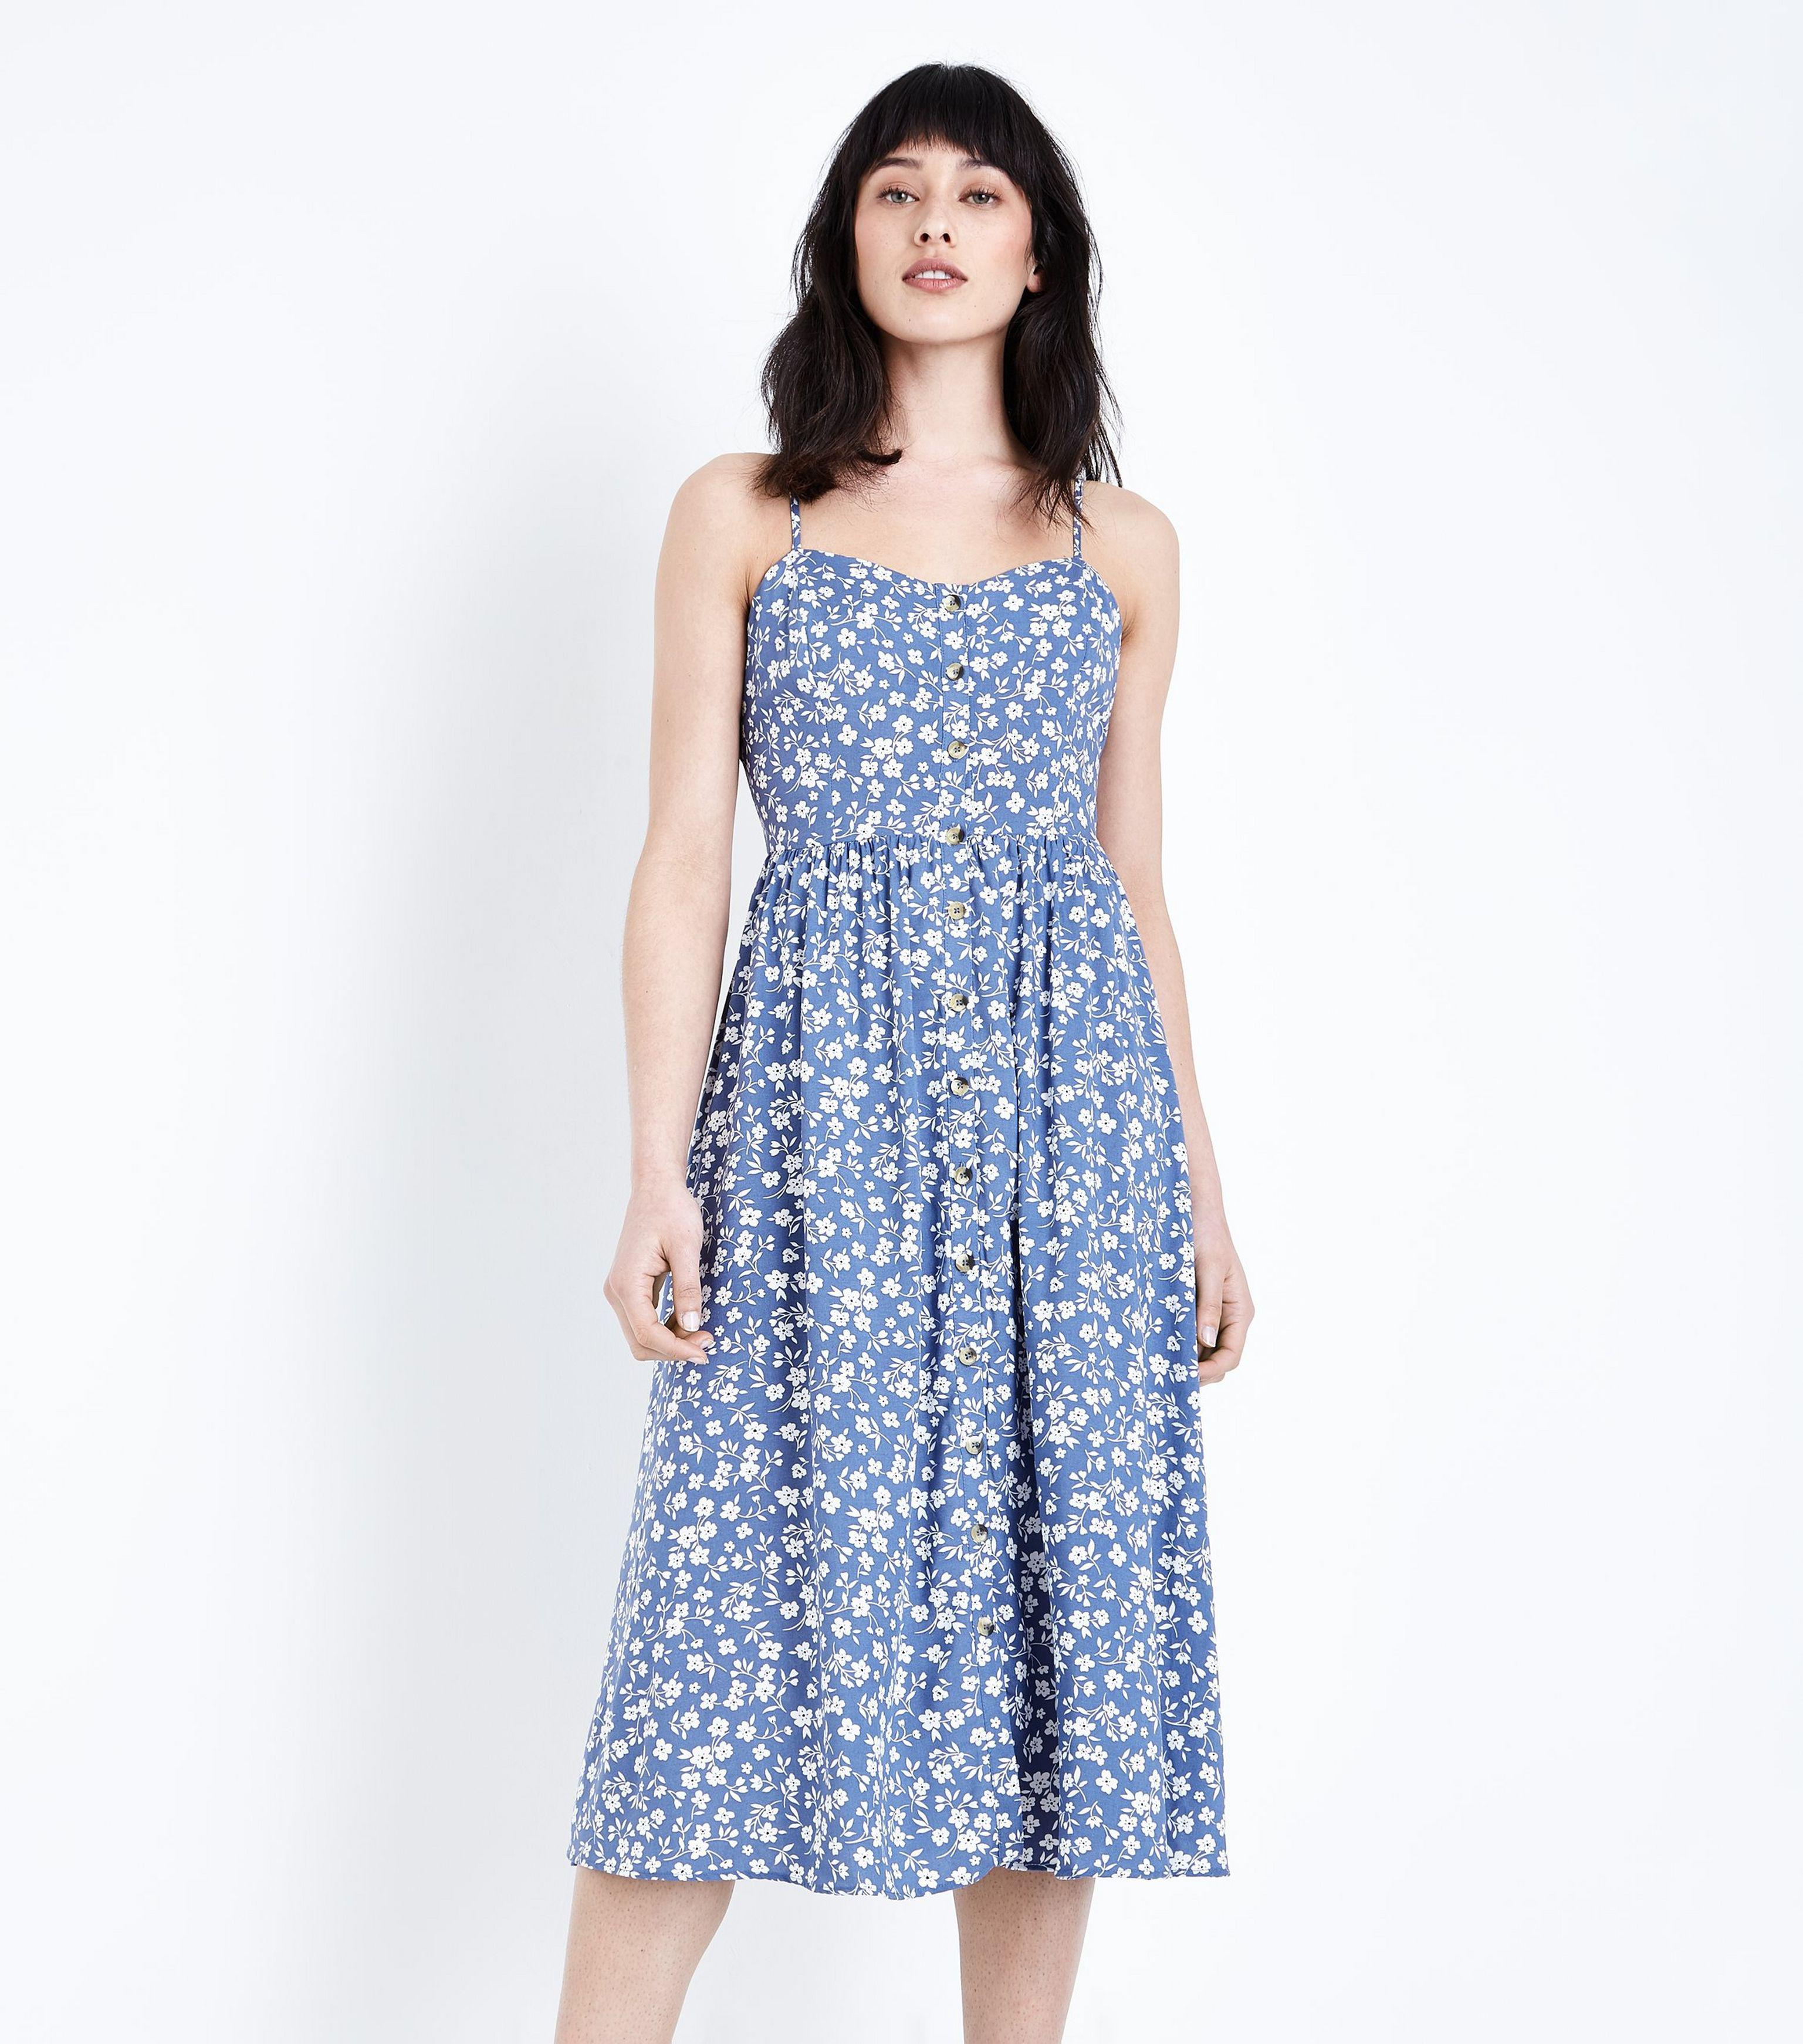 New Look Pale Blue Ditsy Floral Midi Dress in Blue - Lyst